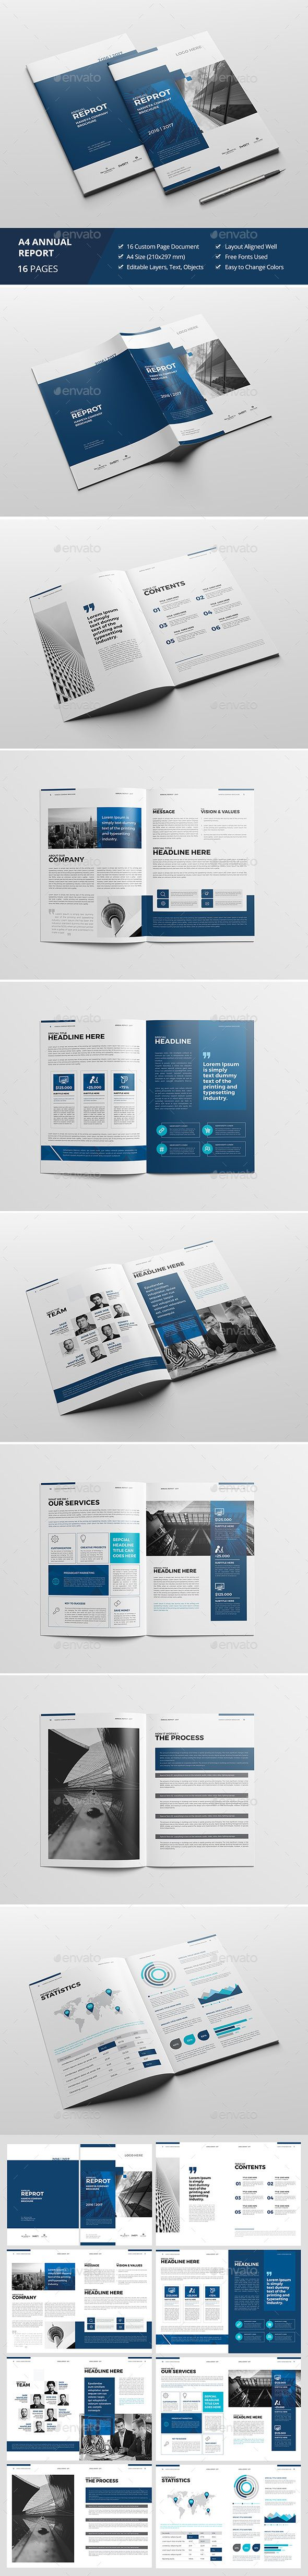 210 best Annual Report Template Design images on Pinterest